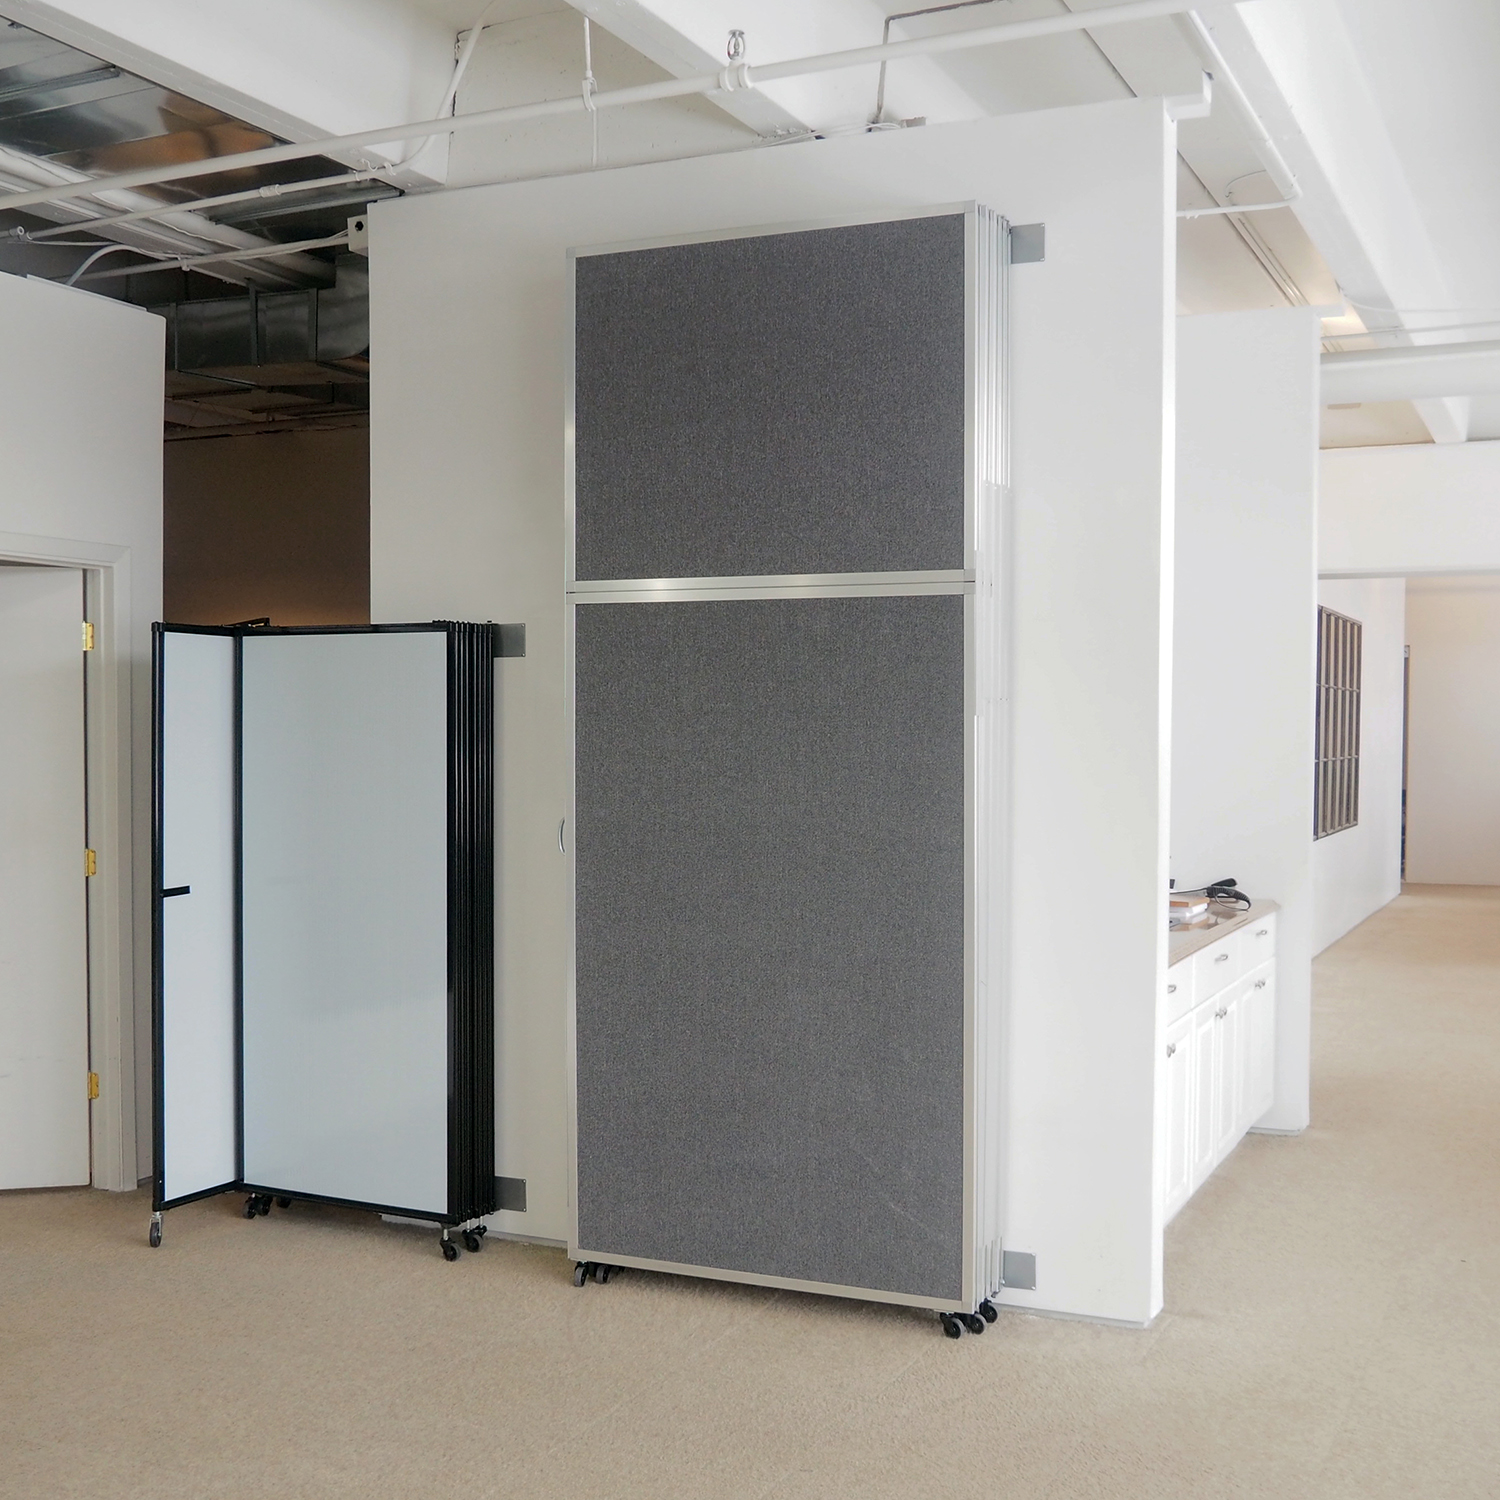 Versare operable wall large room dividers reach new heights - Room partitions ...